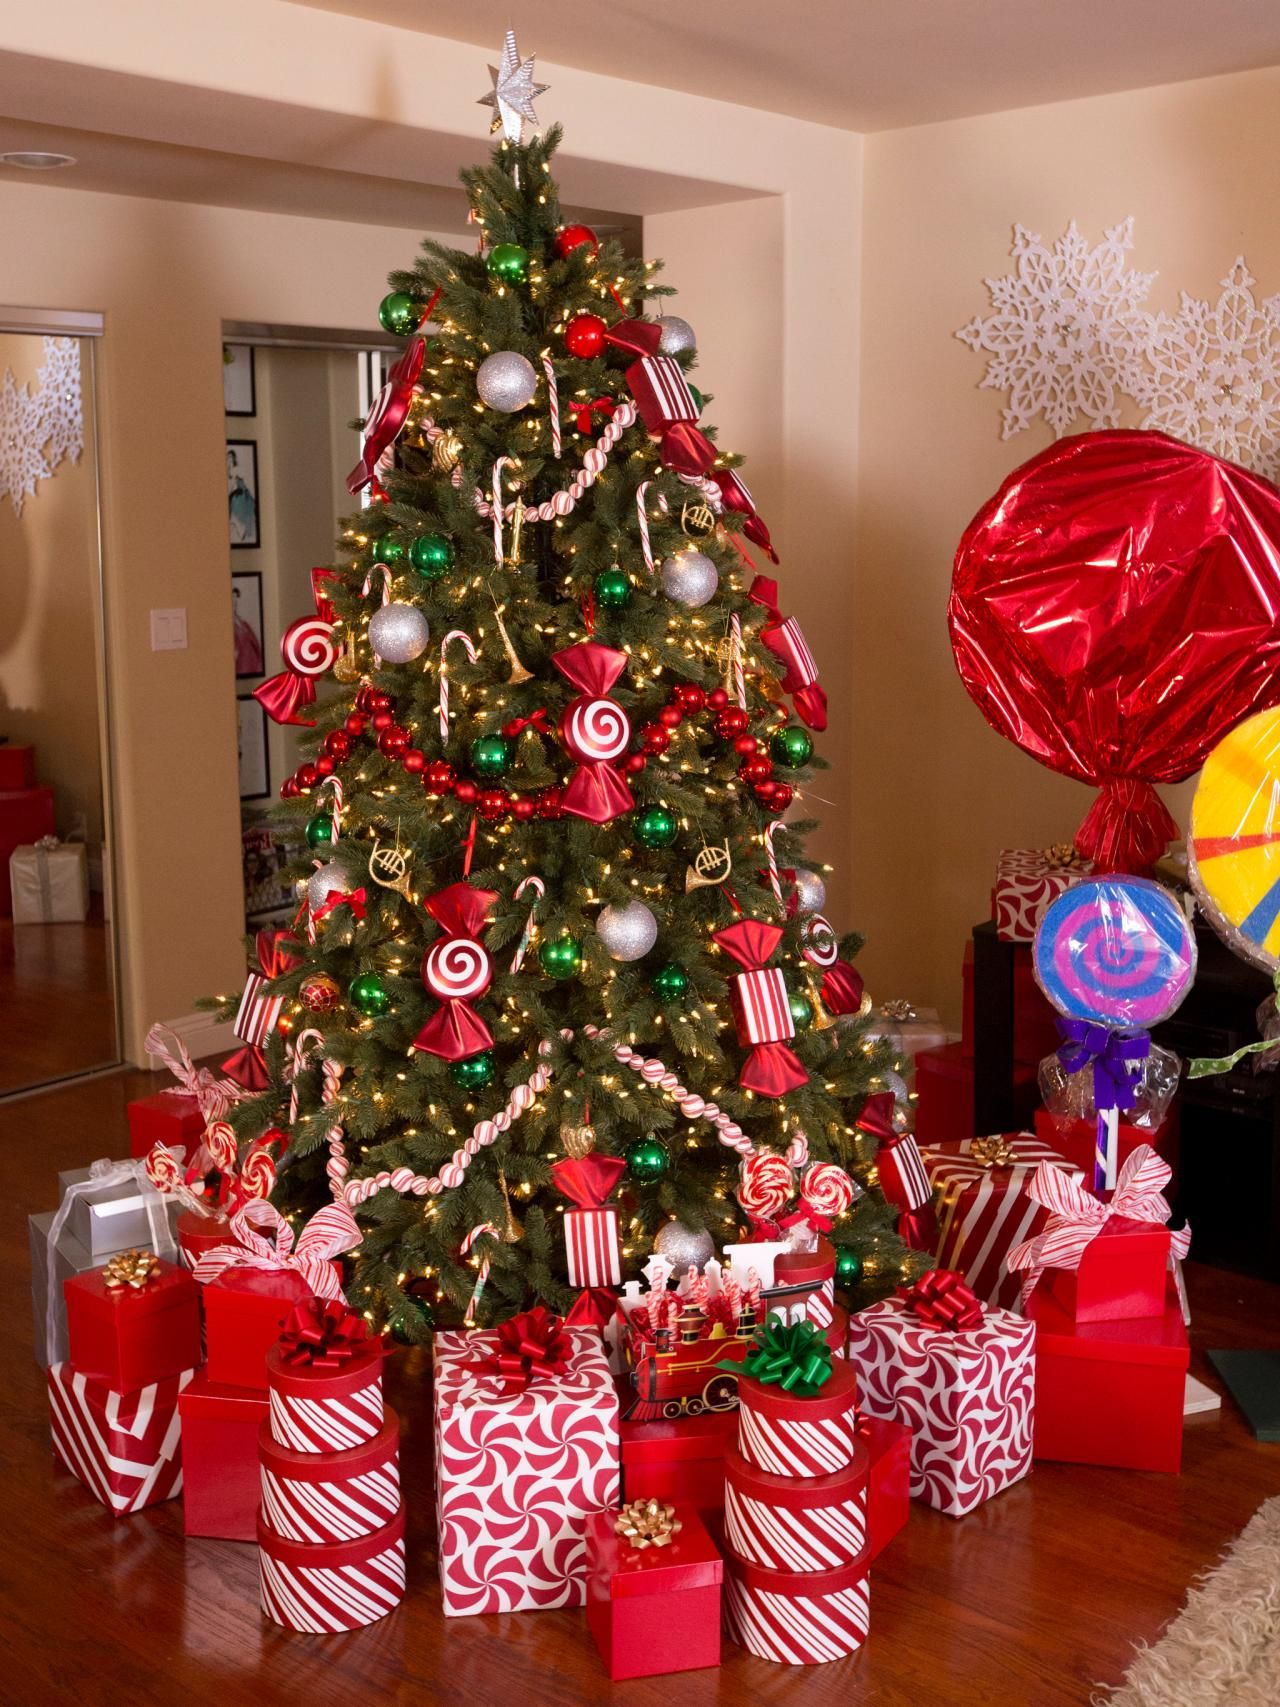 50+ Christmas Tree Decorating Ideas | Garcelle beauvais, Candy canes ...